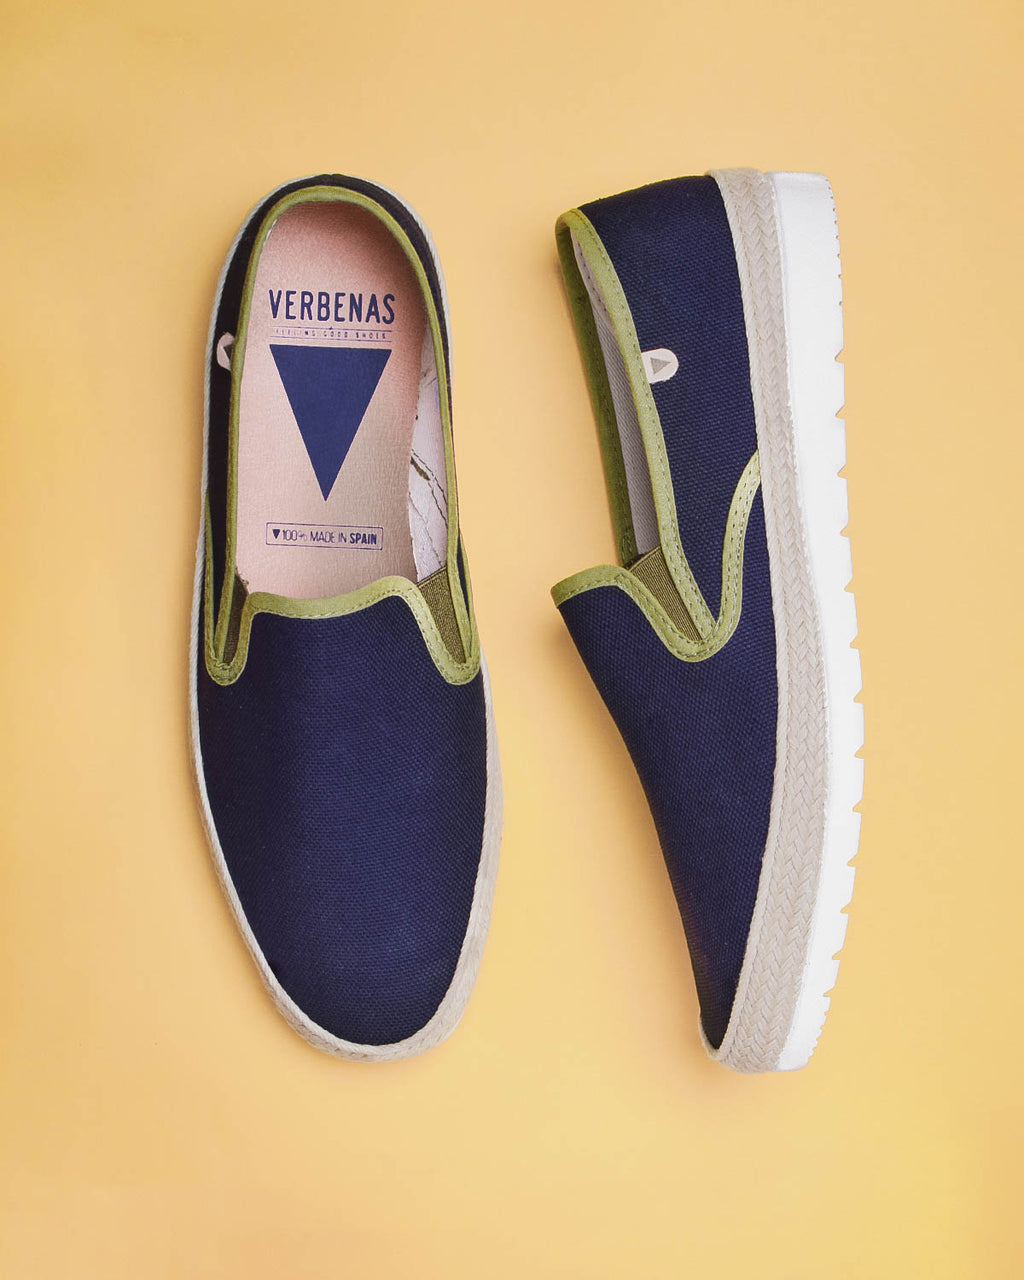 Boris Paris Canvas Slip On Sneakers - Navy / Khaki - Verbenas USA